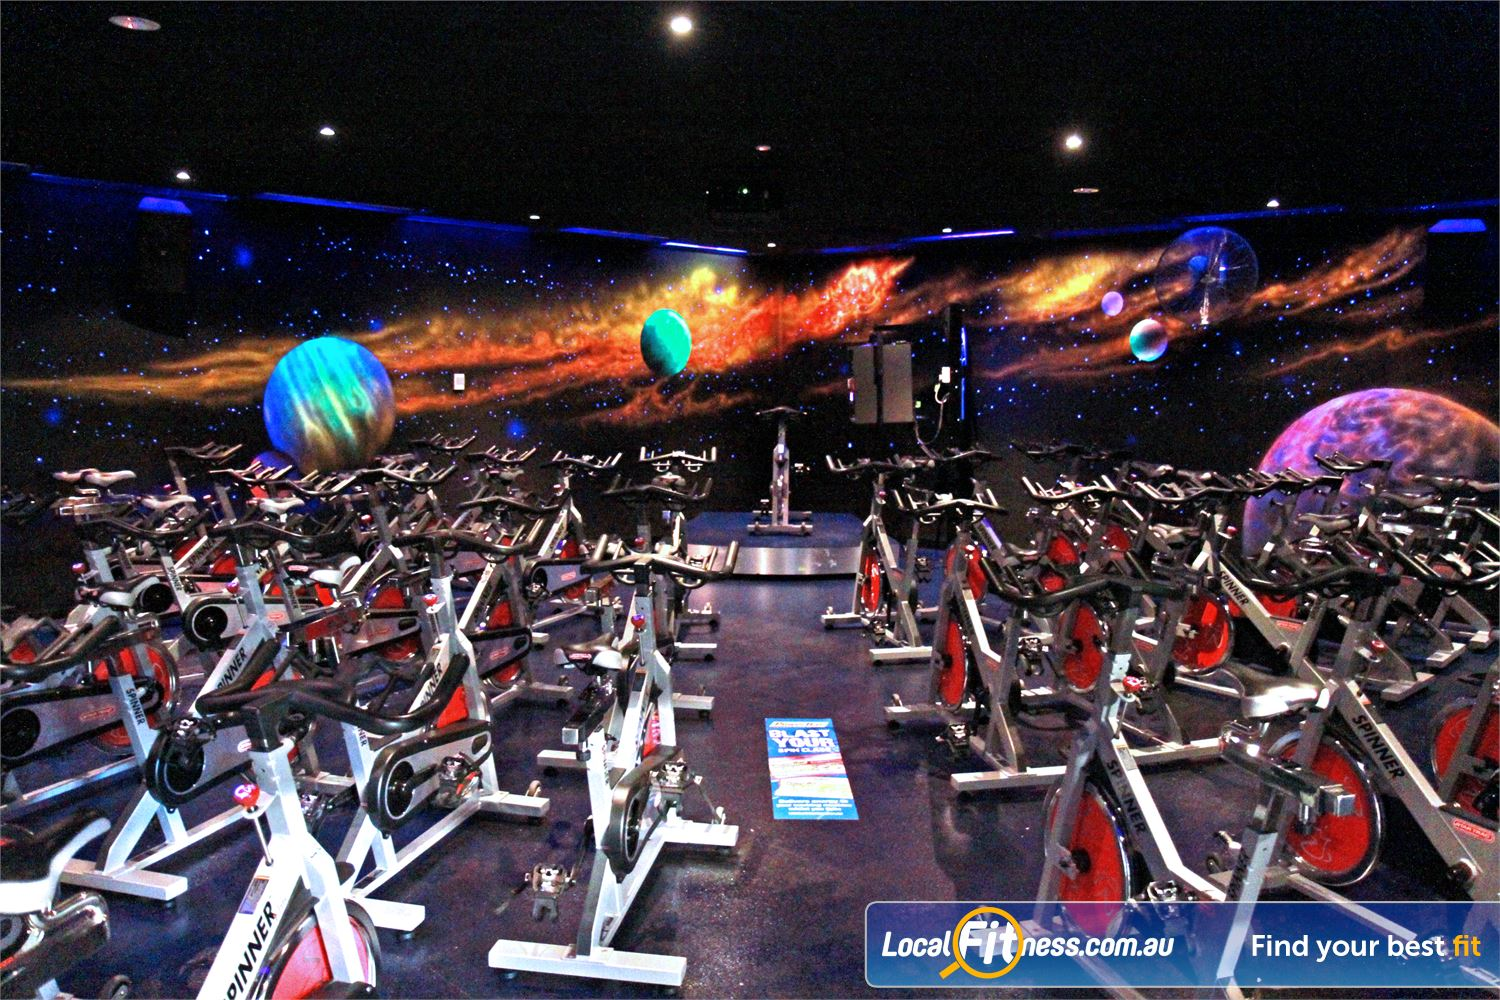 Goodlife Health Clubs Near Mitchell Park Goodlife Marion includes our signature Cosmic spin cycle classes.